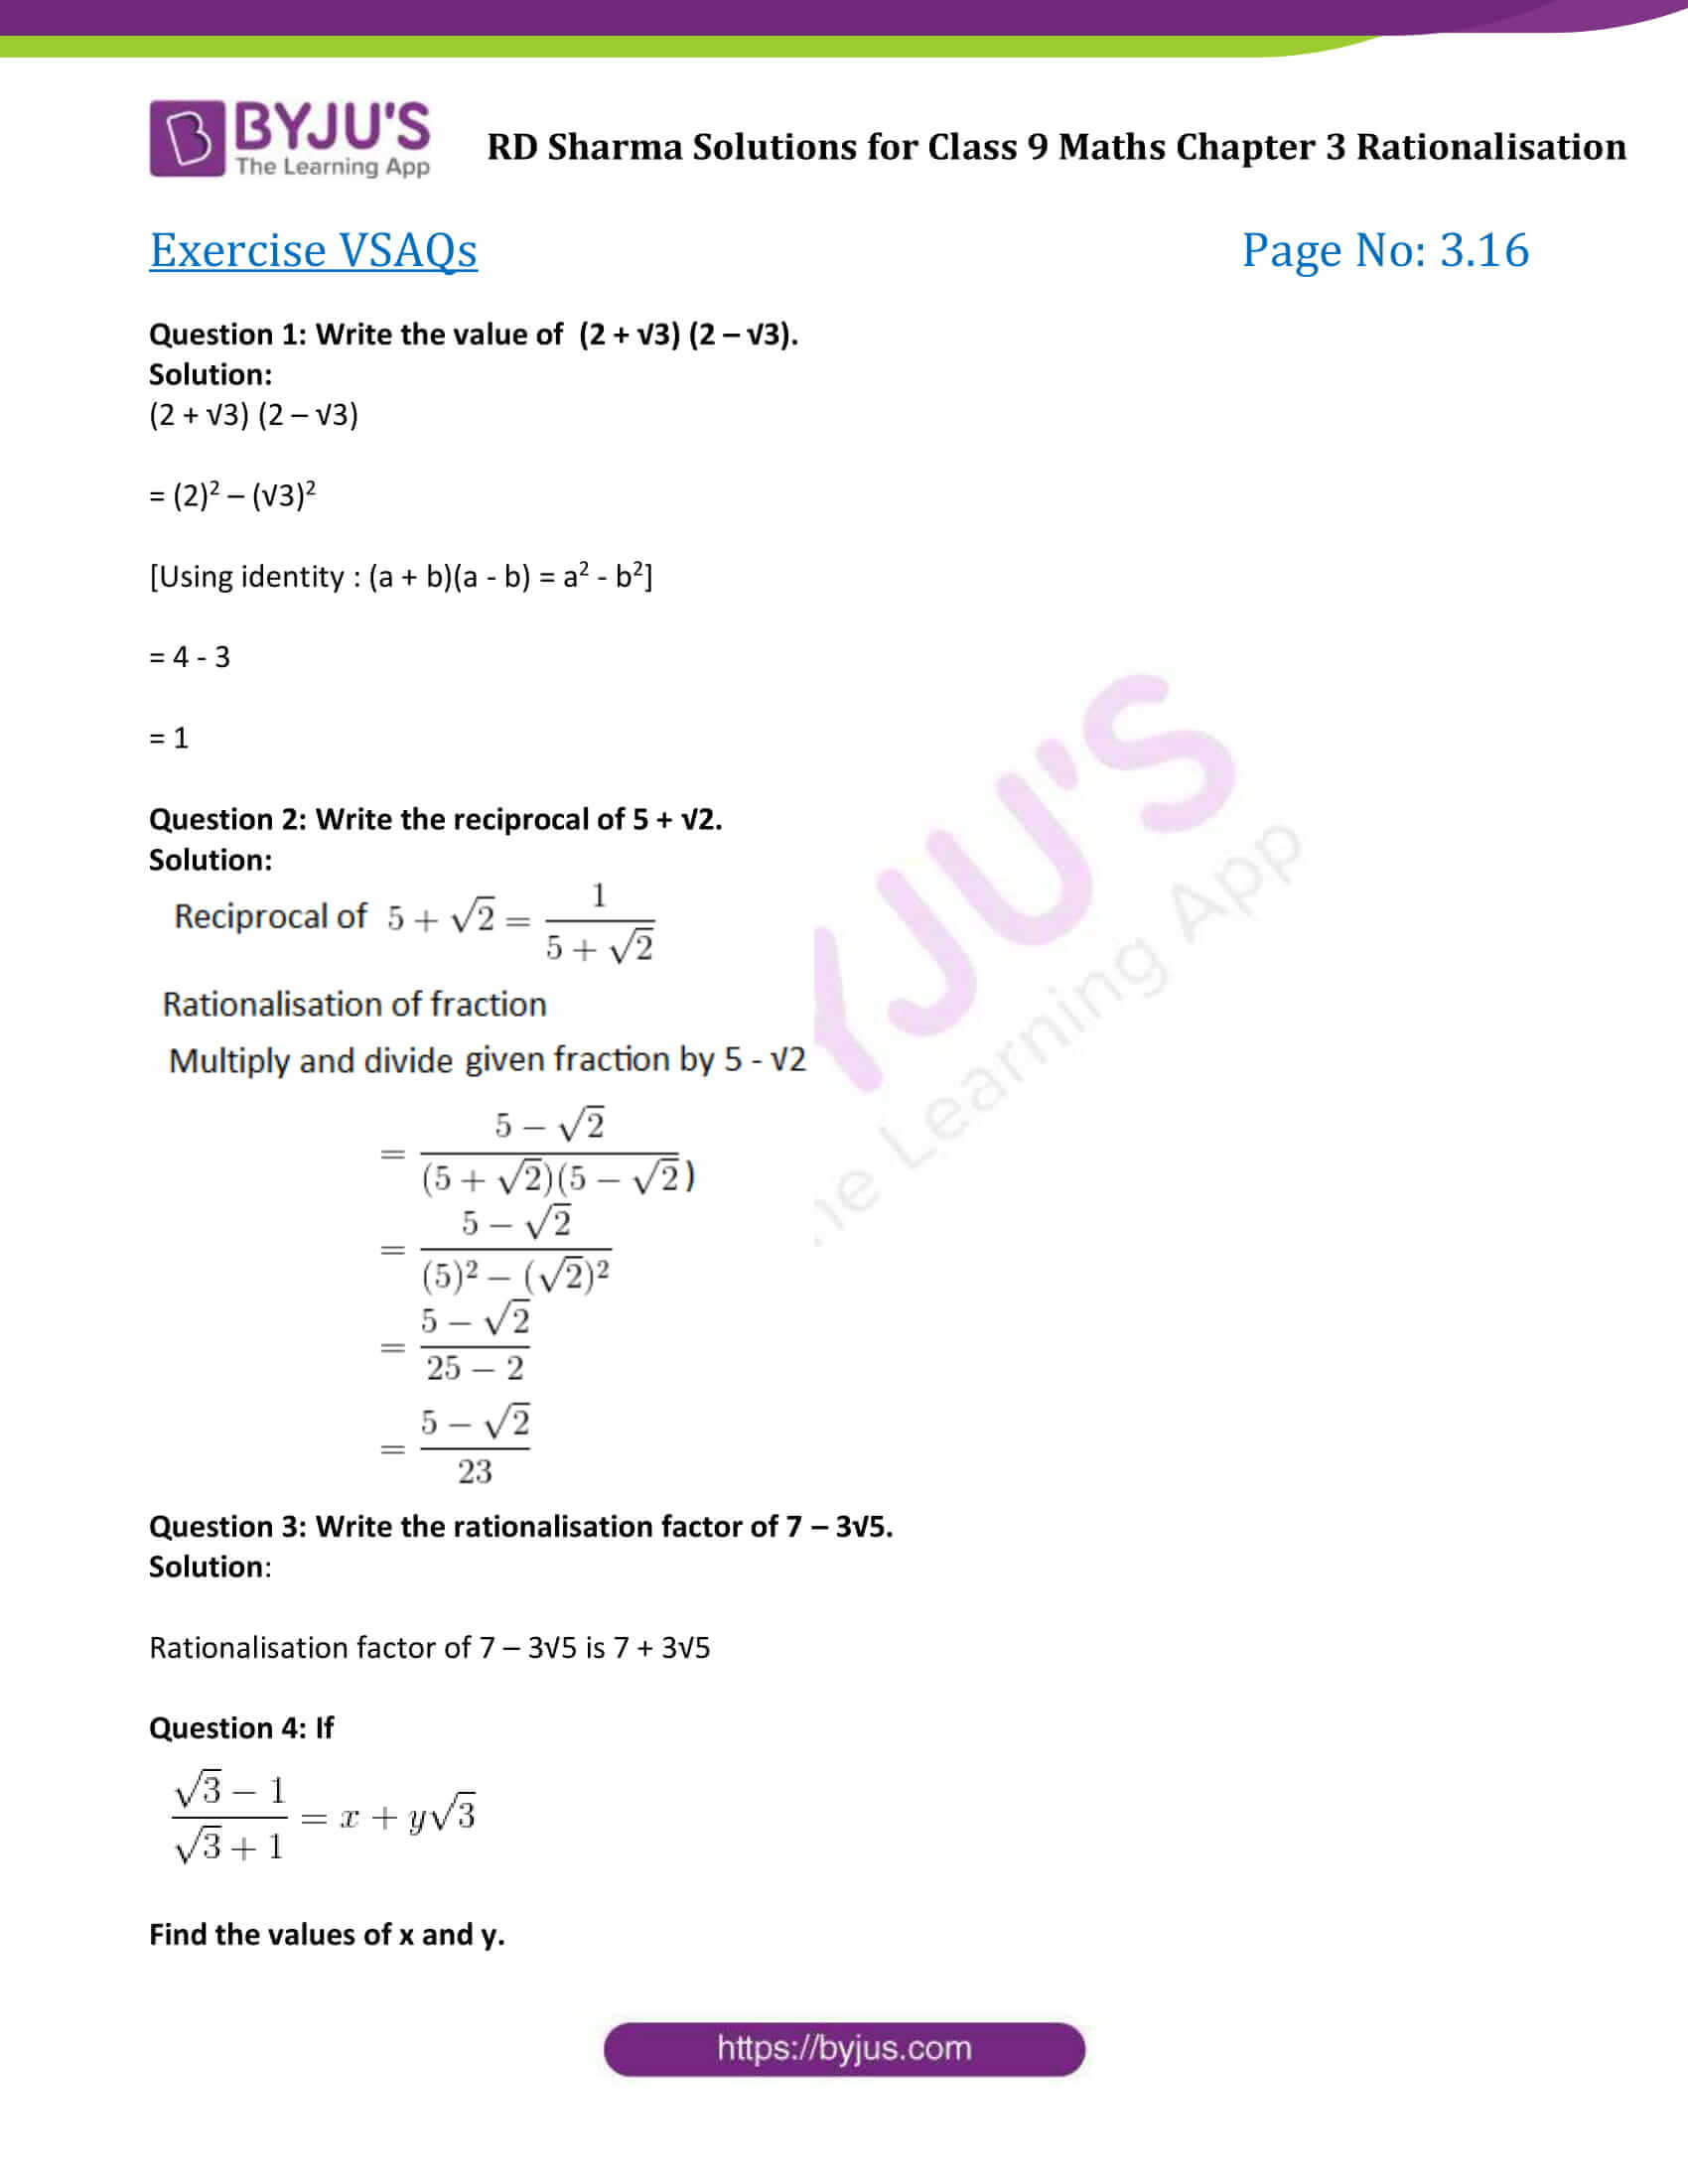 RD Sharma Solution class 9 Maths Chapter 3 Rationalisation 14